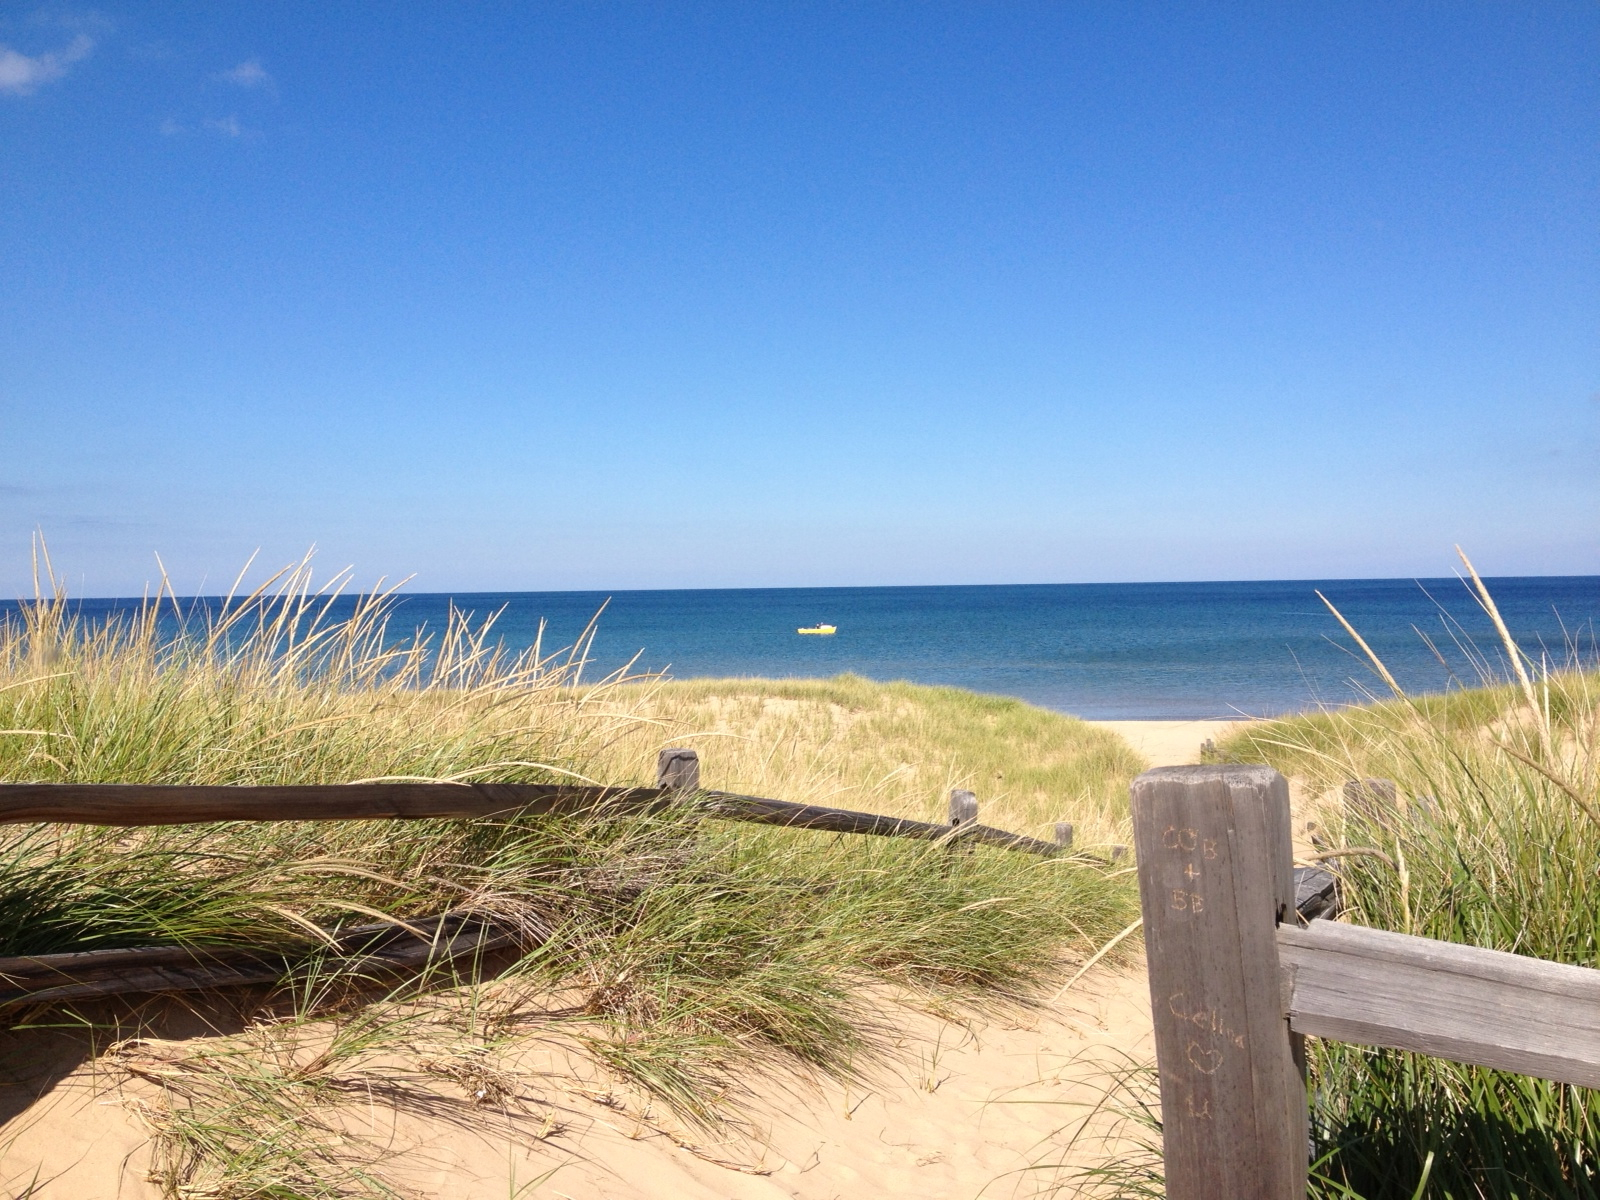 East Hampton beaches are among the best in the world.